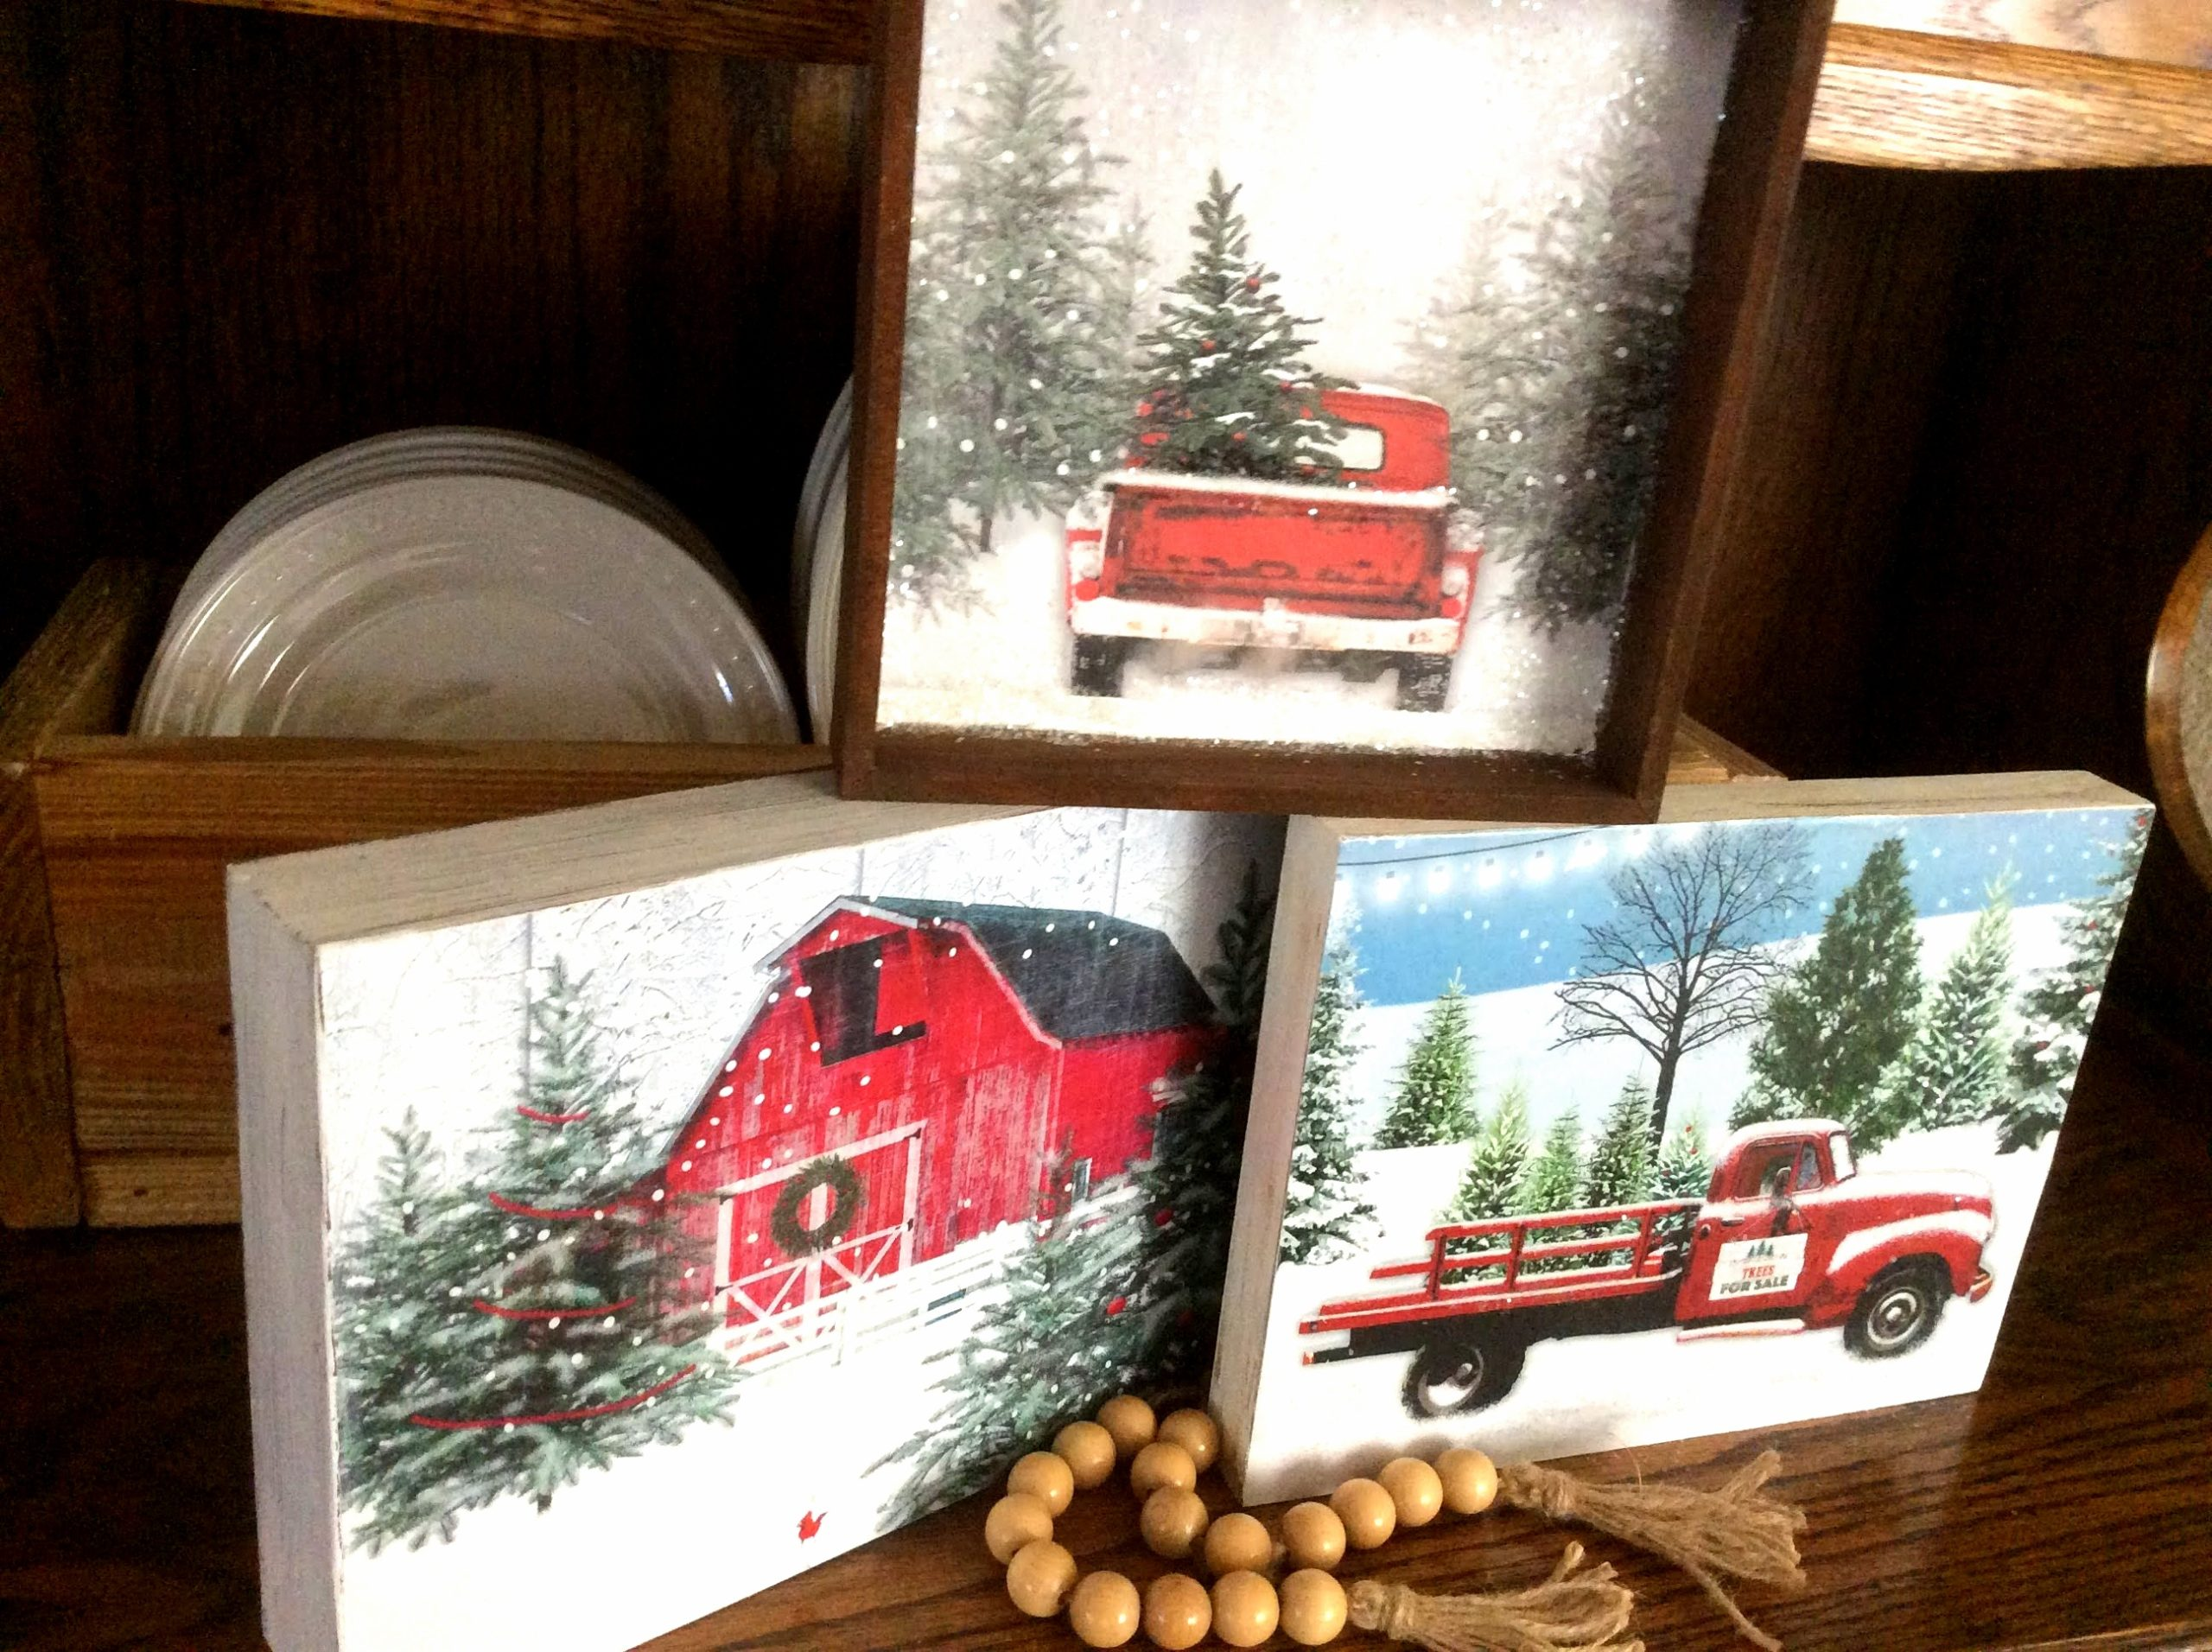 Gift bag Christmas farm art by Fresh Vintage by Lisa S, featured on DIY Salvaged Junk Projects 555 on Funky Junk!